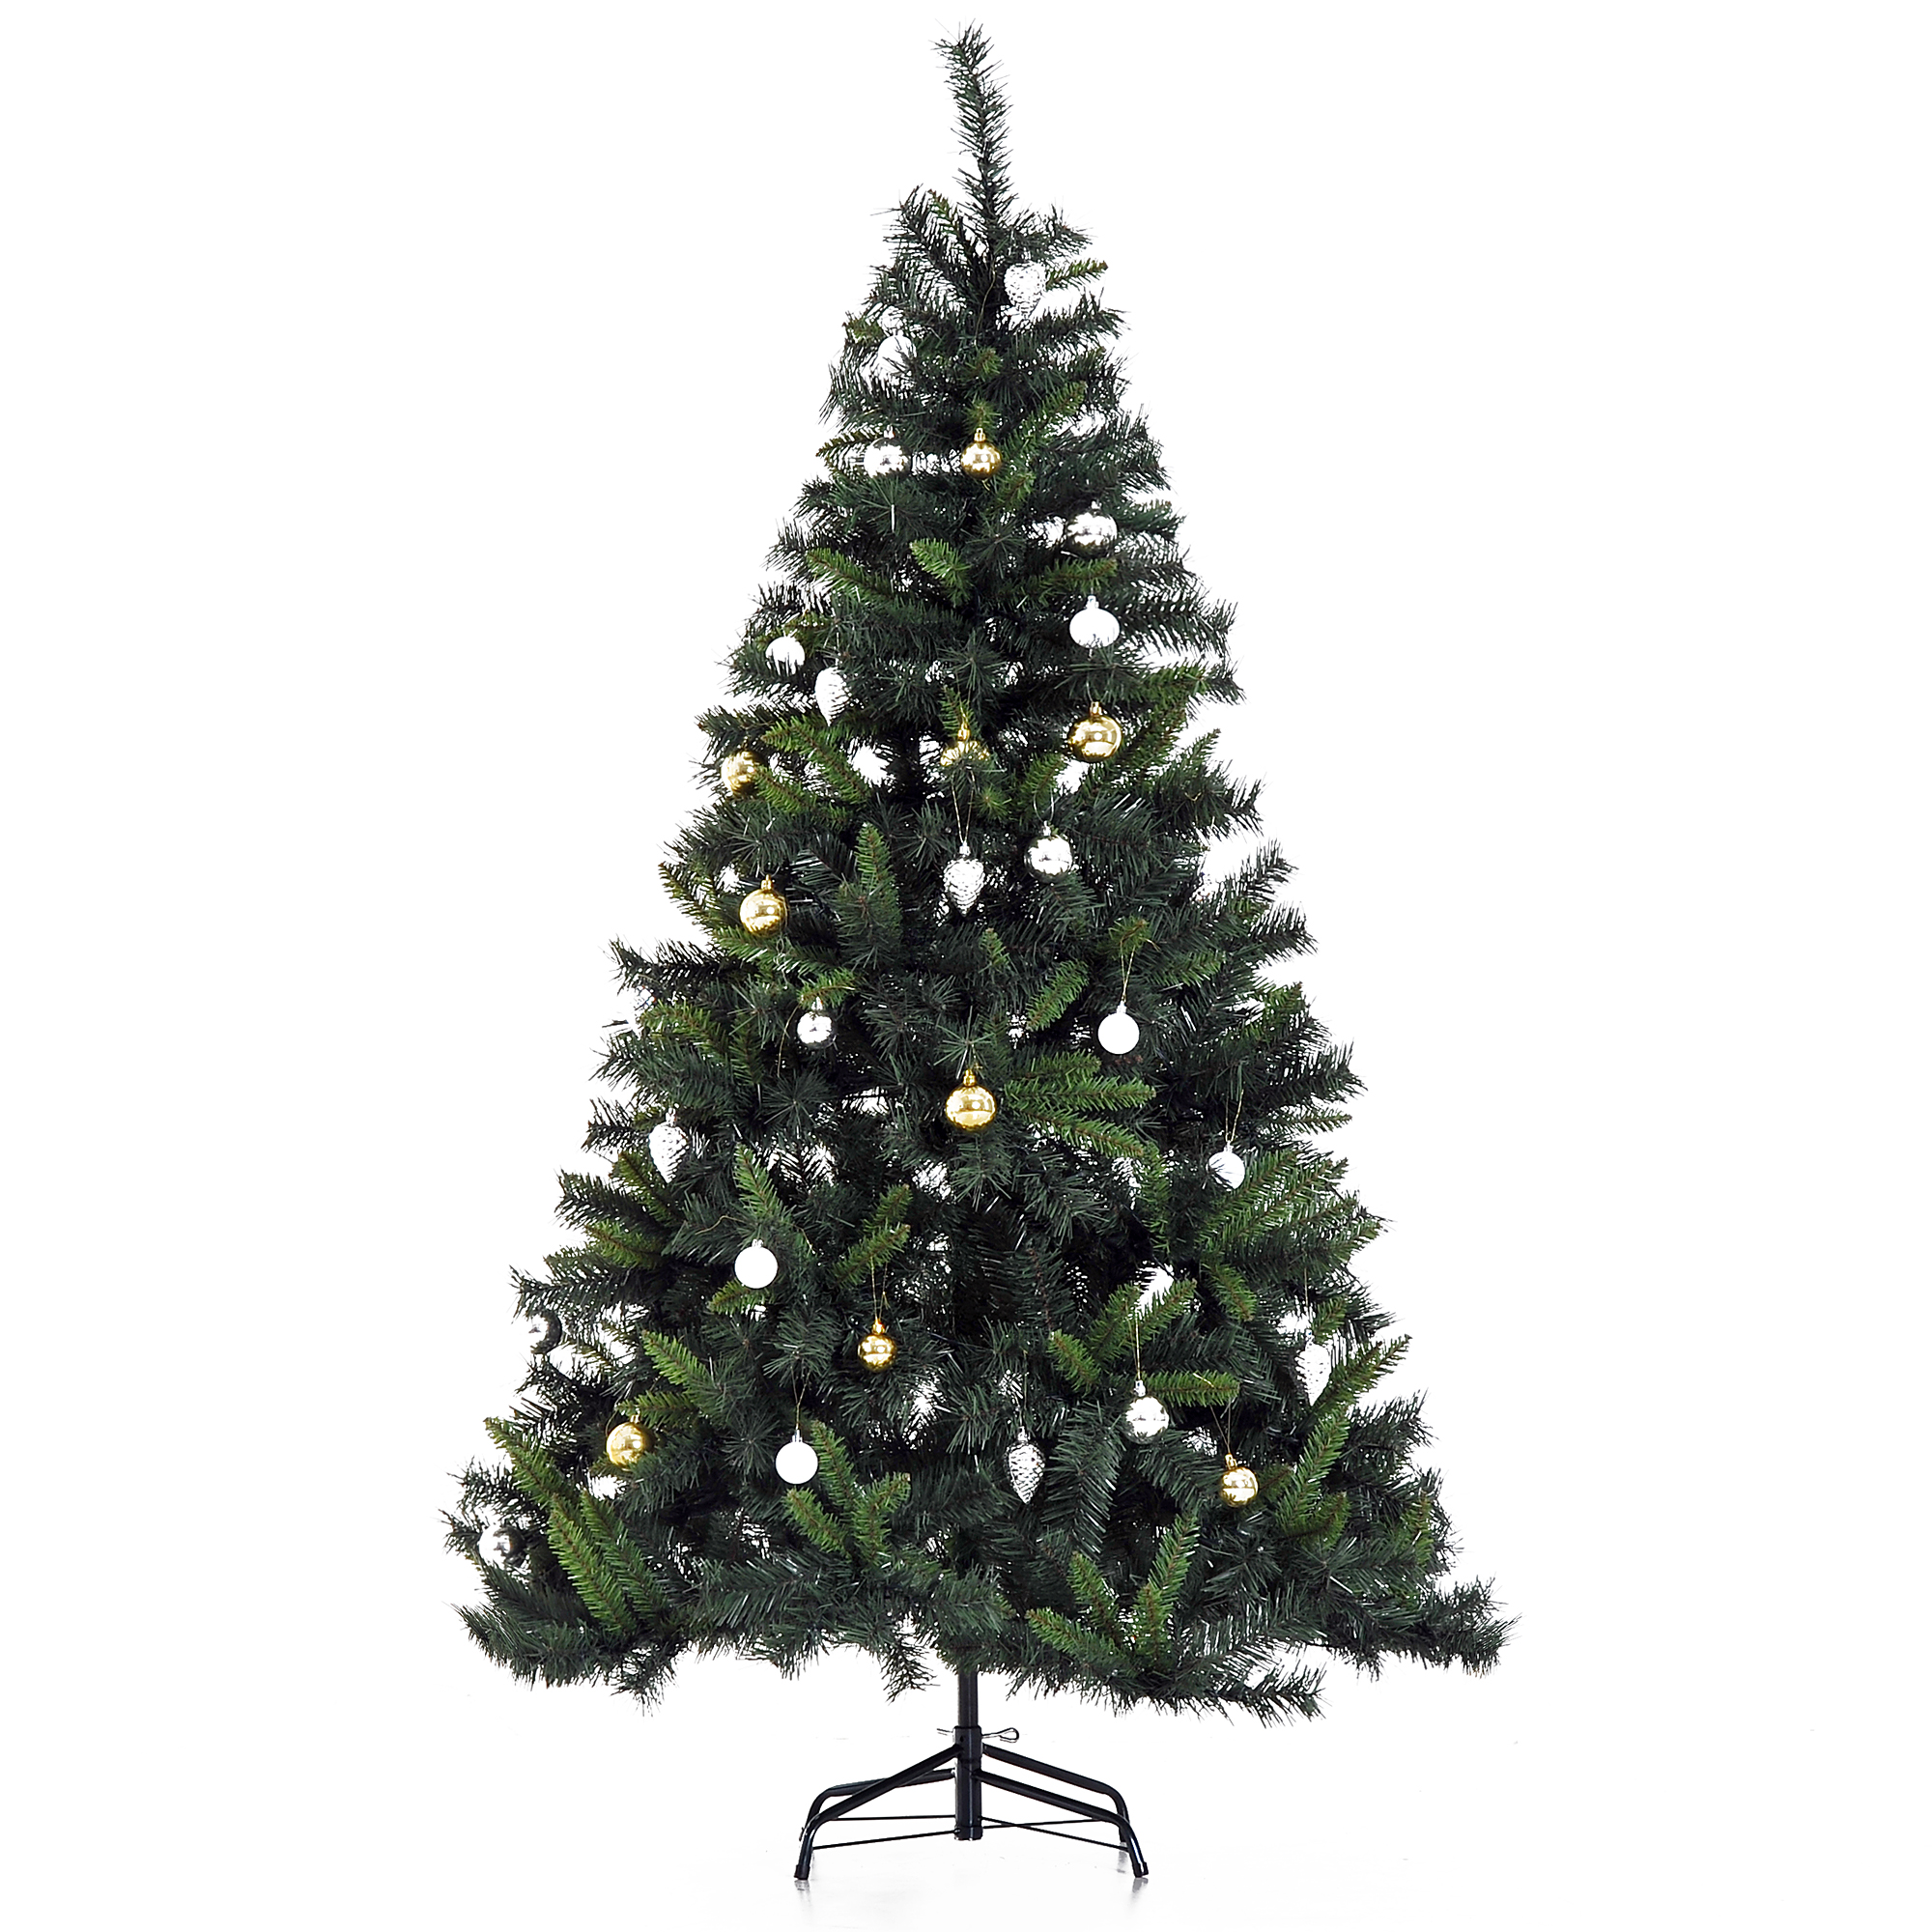 Image of £38.99 HOMCOM Artificial Christmas Tree W/ Ornament, 1.5m / 5FT Pre-Lit 120 LED Xmas Holiday Décor with Decorative Balls Ornament Metal Stand 830-197 5056029807019